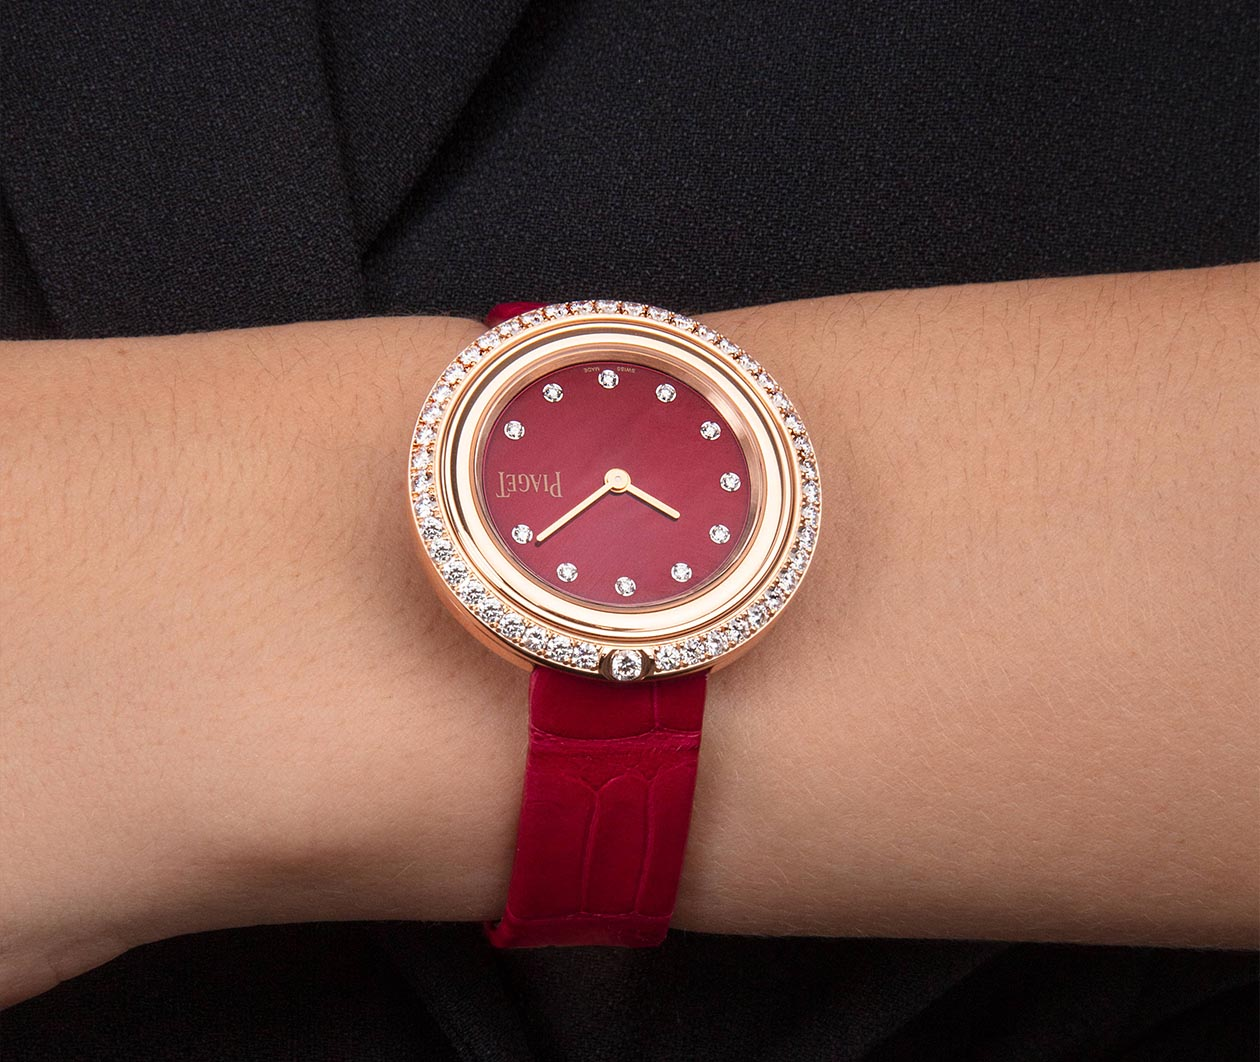 Piaget Possession watch G0A44086 Hover 2 FINAL